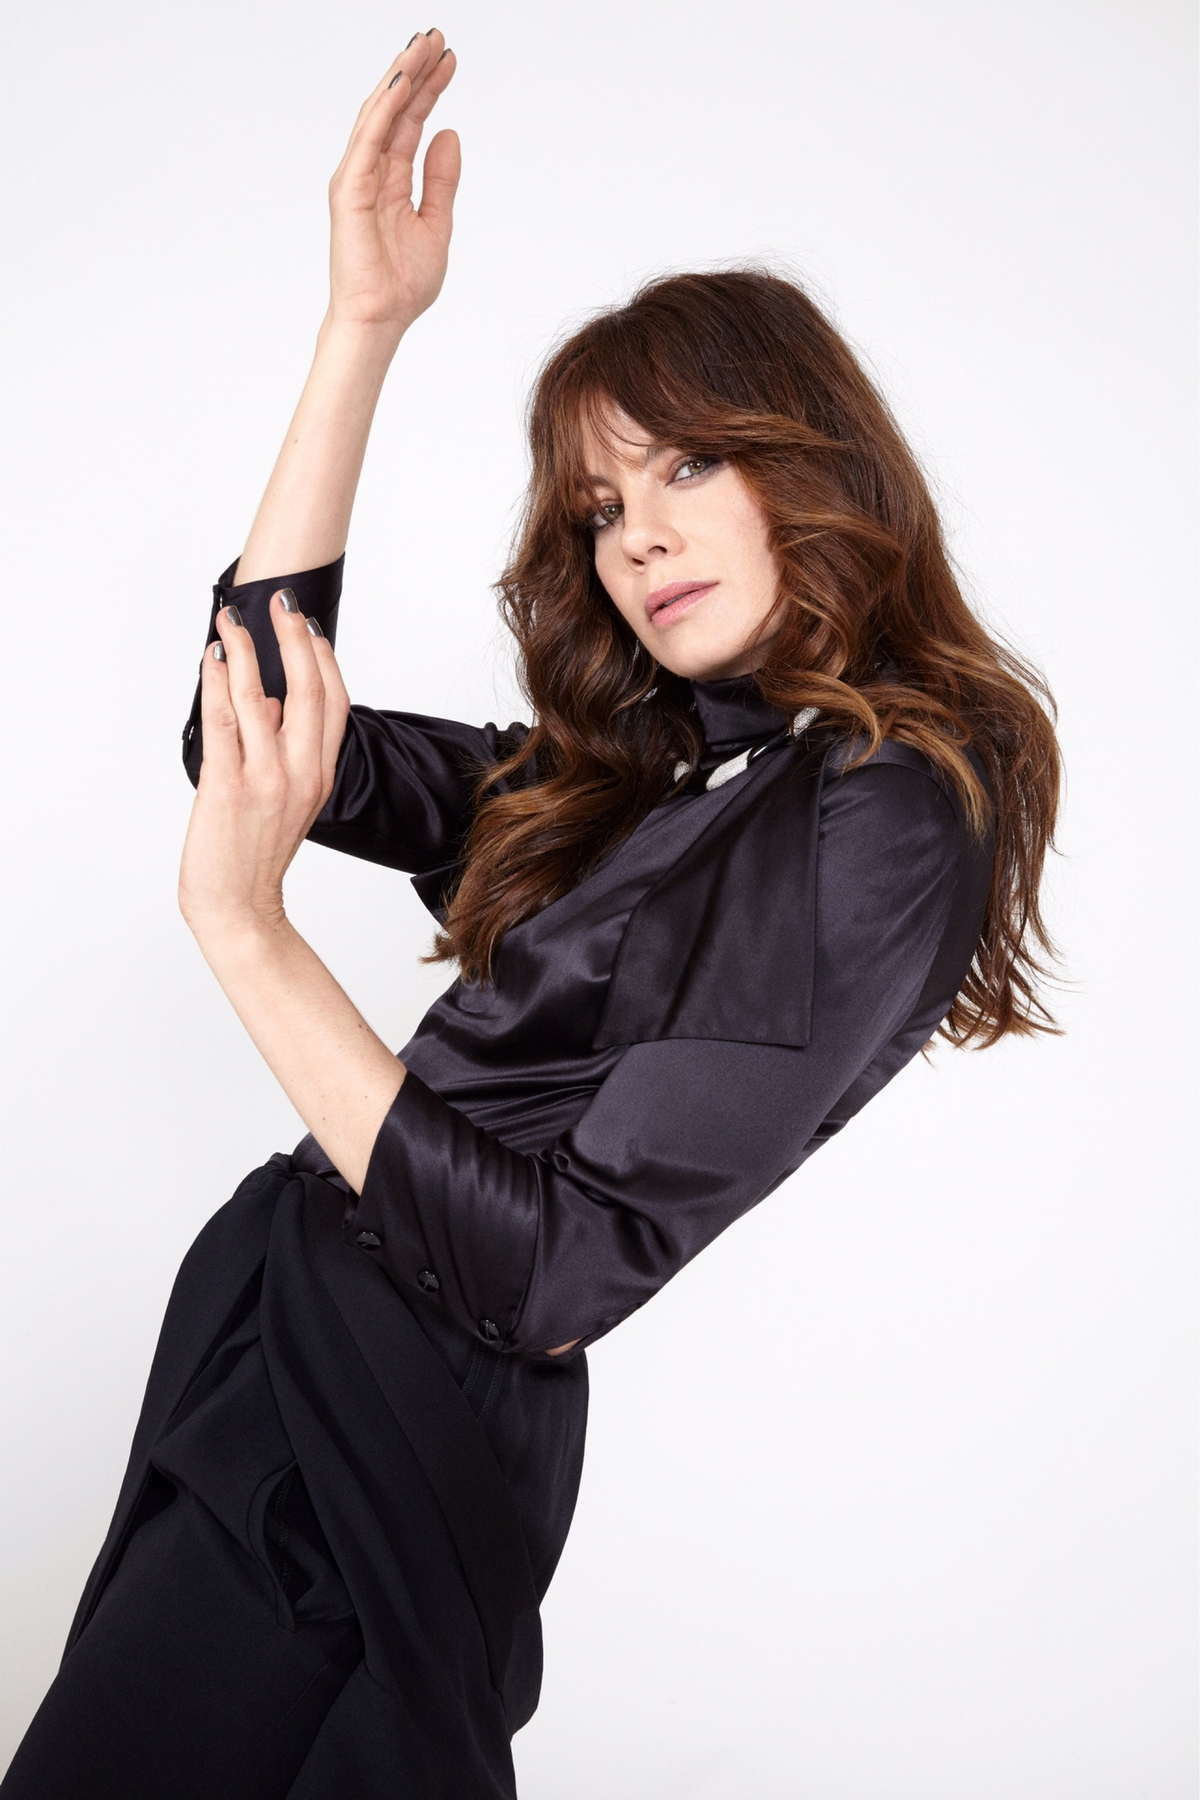 Michelle-Monaghan-ContentMode-July-201800001.jpg